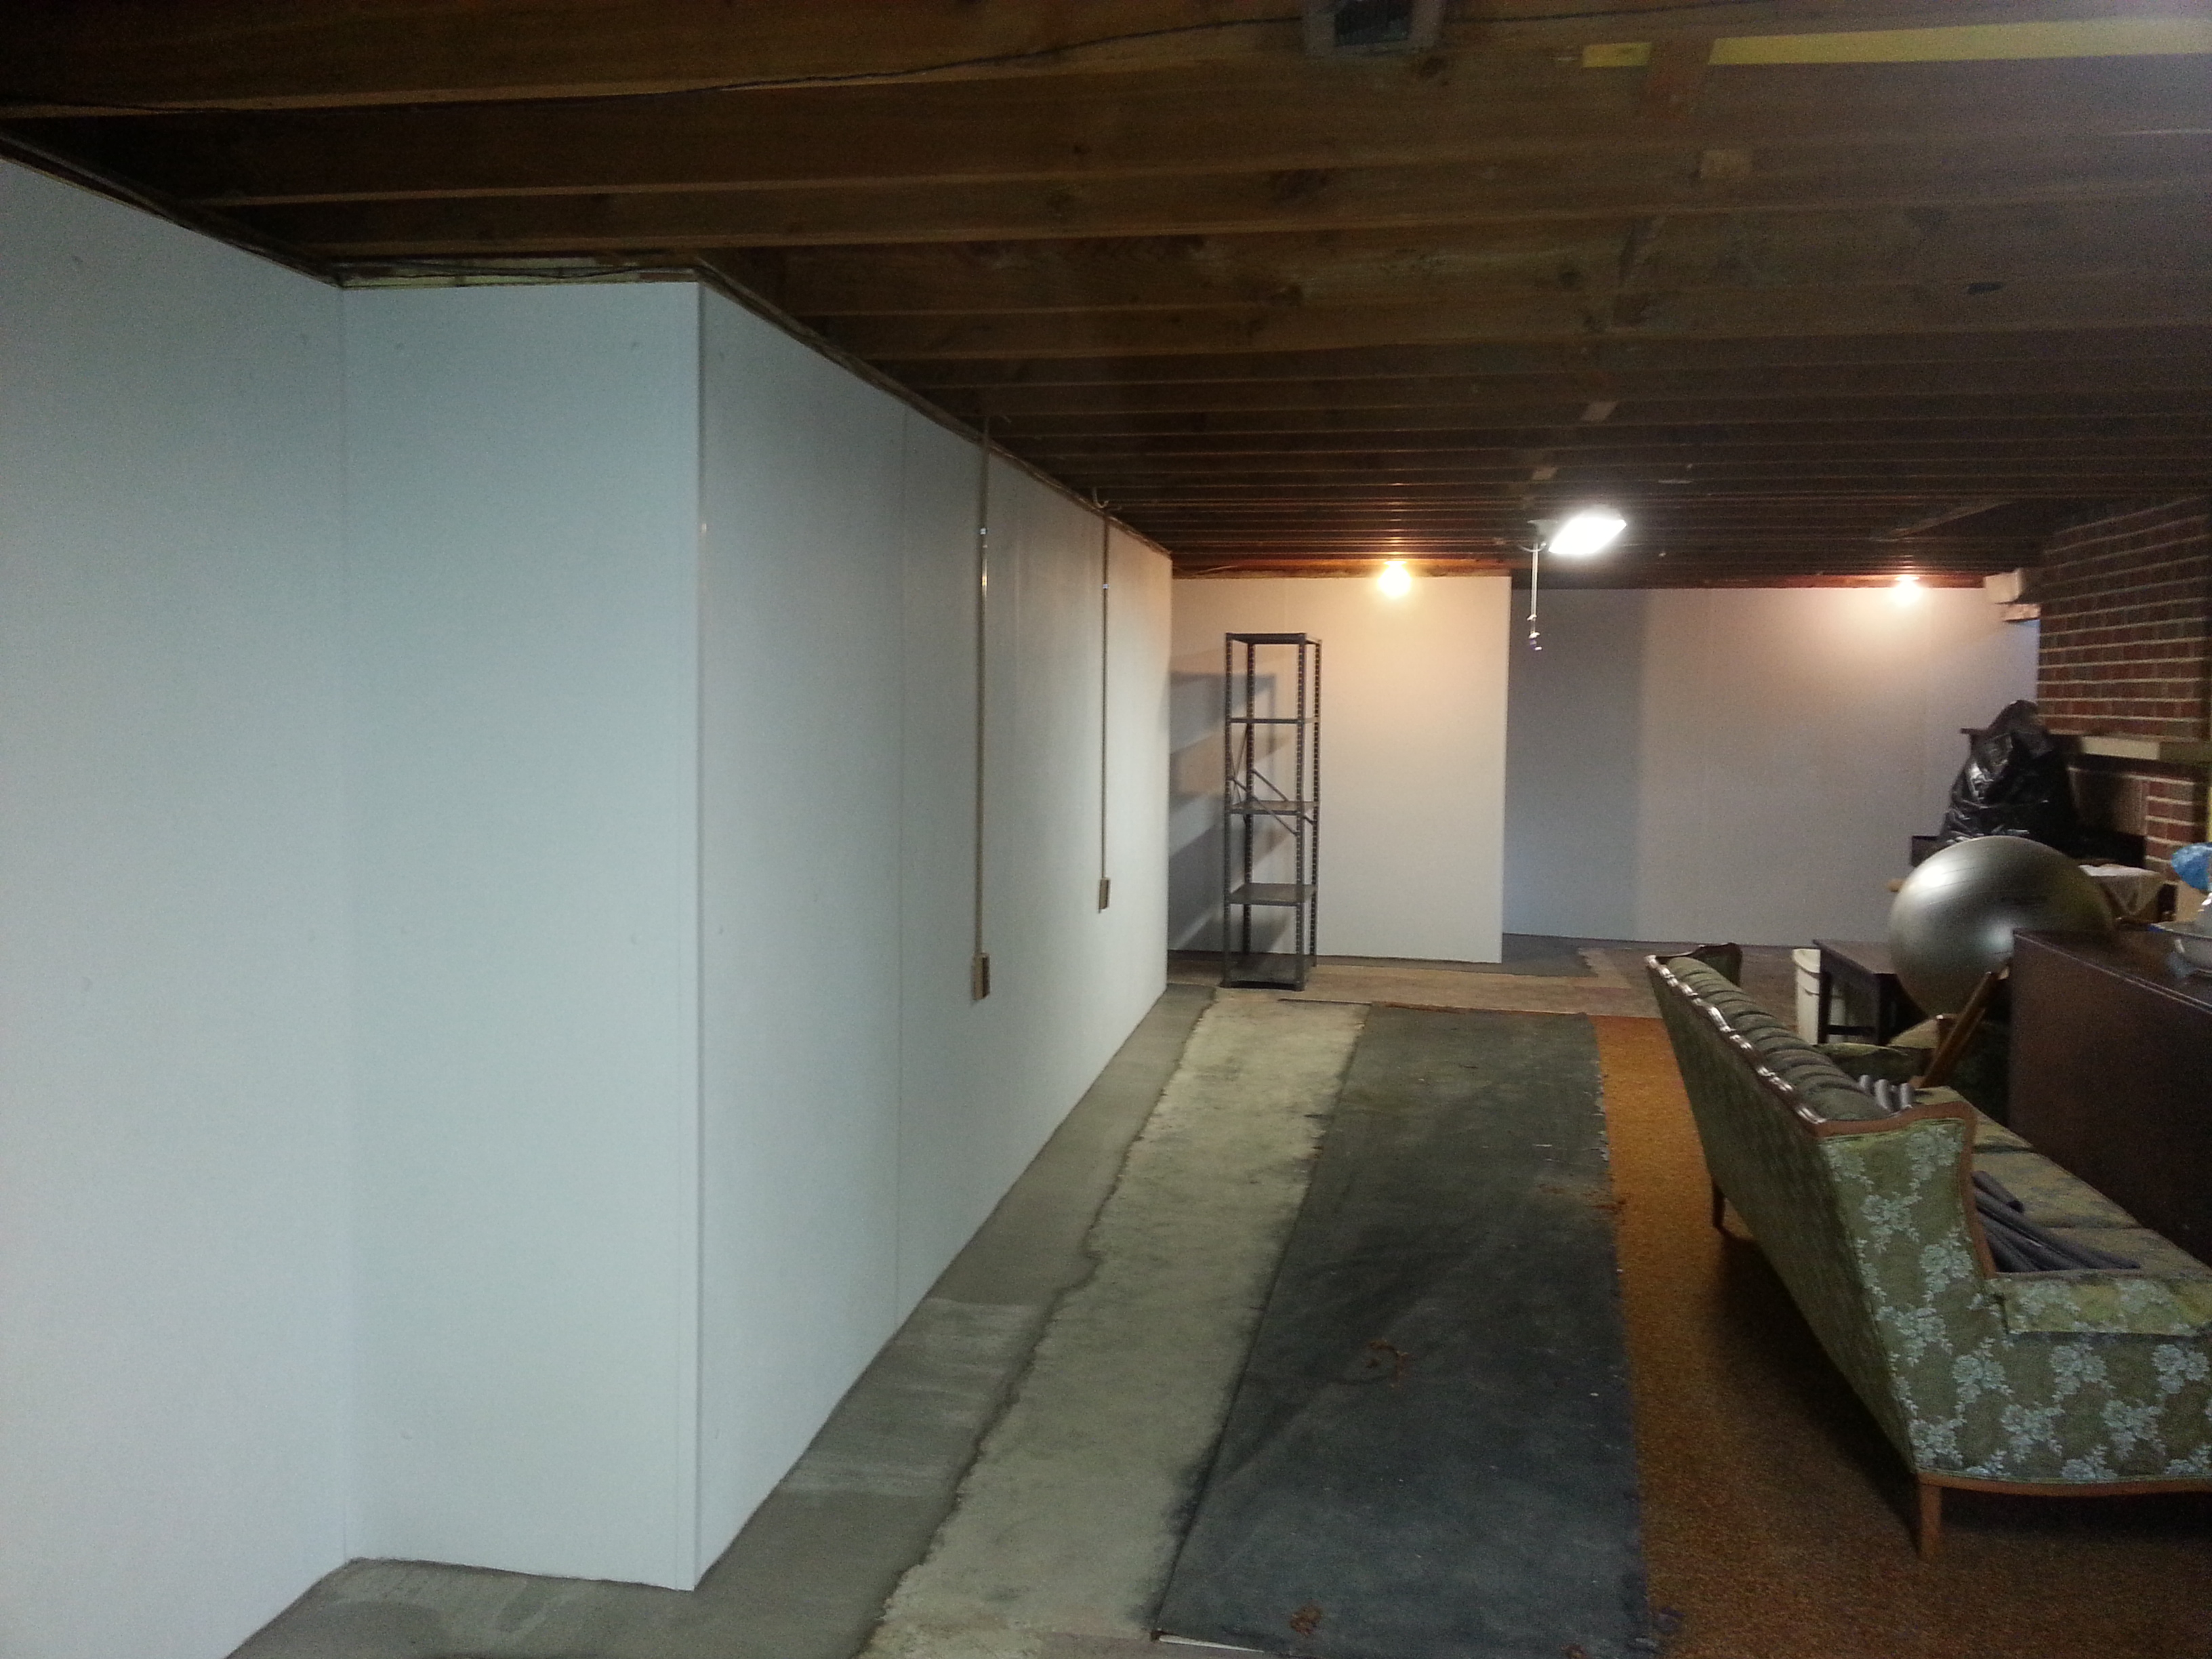 Interior Basement Waterproofing System & Interior Basement Waterproofing - Pioneer Basement Solutions